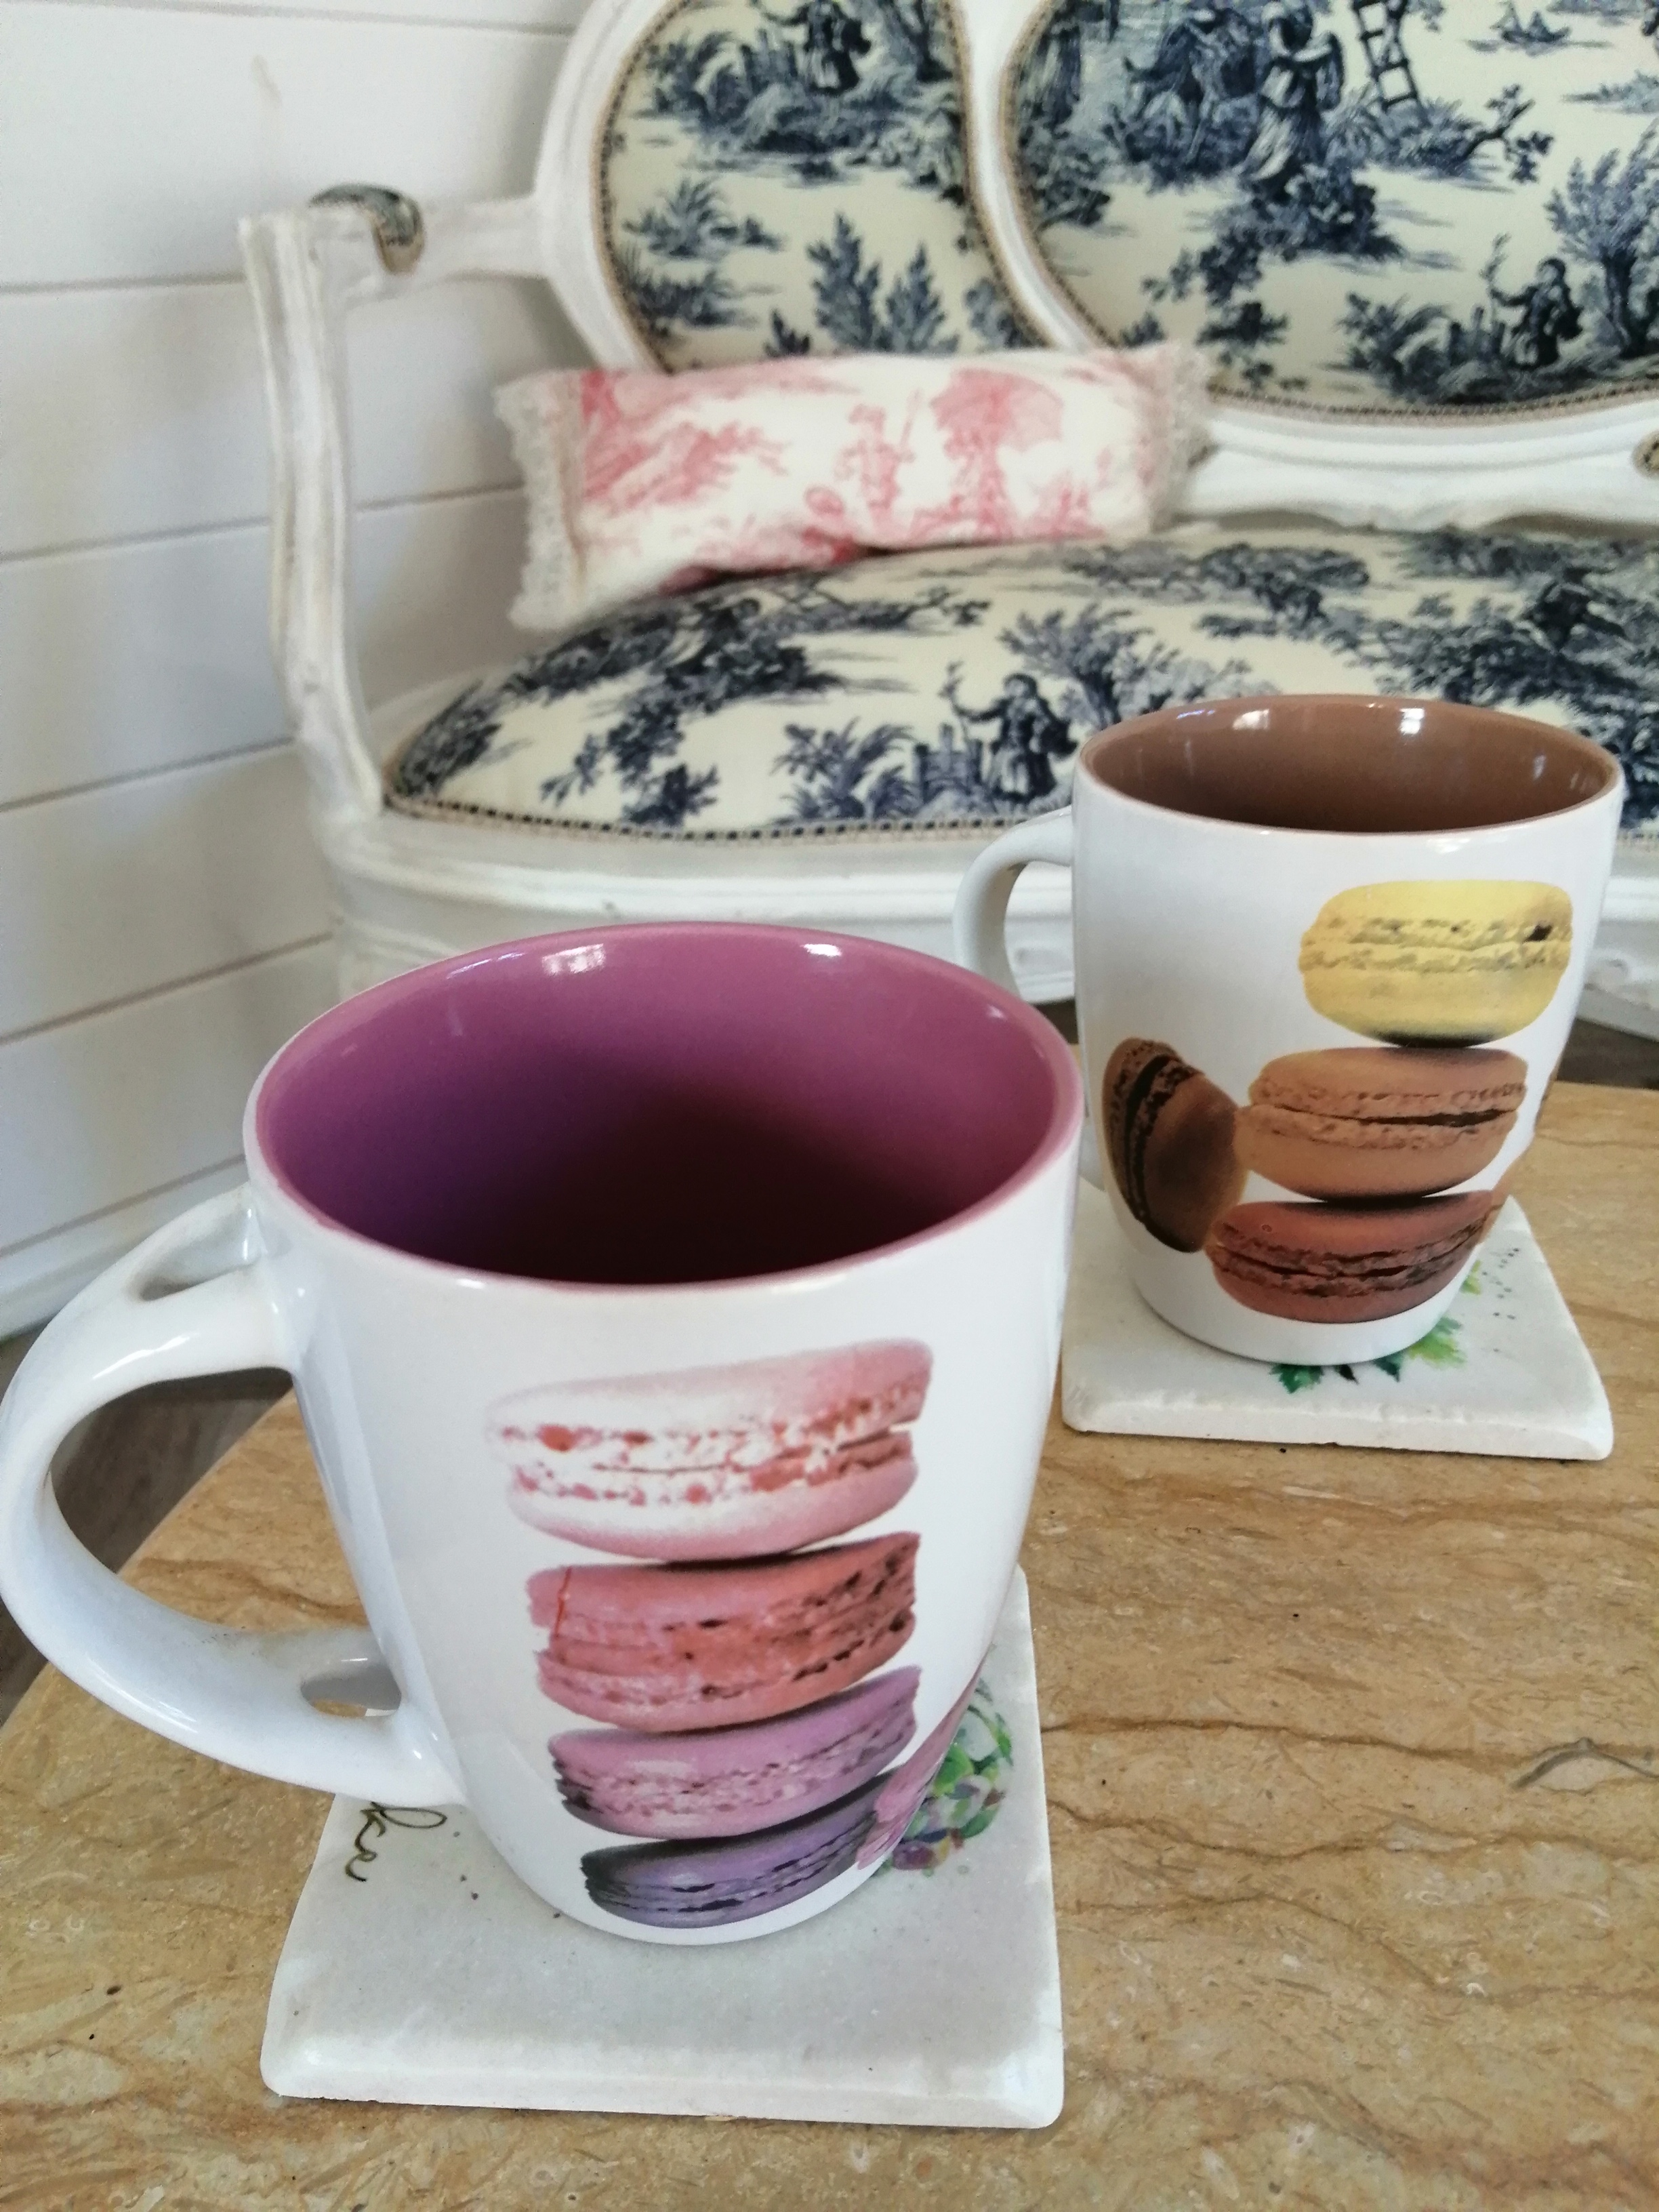 lot de 2 tasses mugs à vendre brocanterie Souriez rose